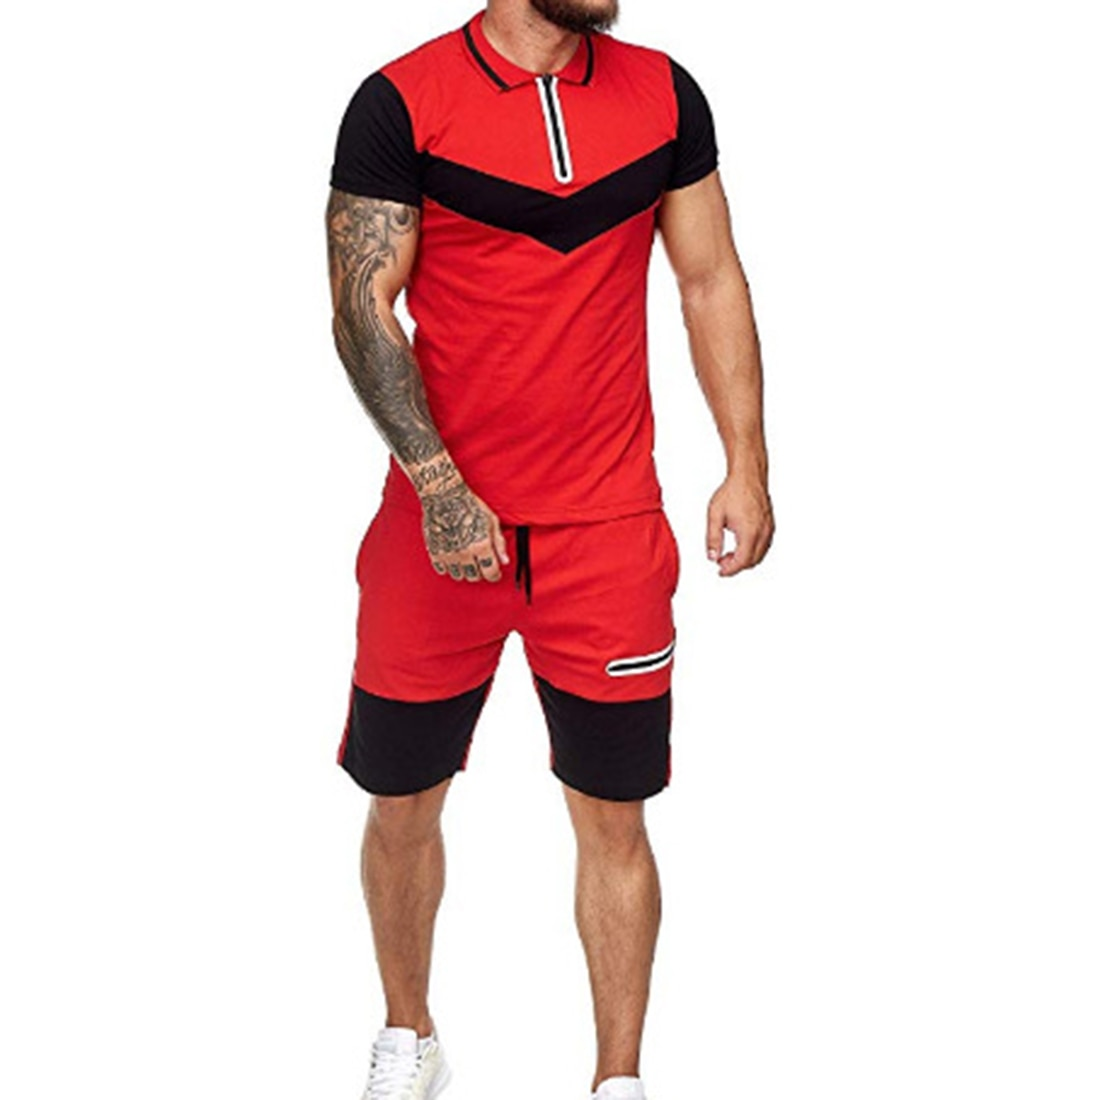 Summer Casual Summer Clothing 2 Piece Set Colorblock Track Suits